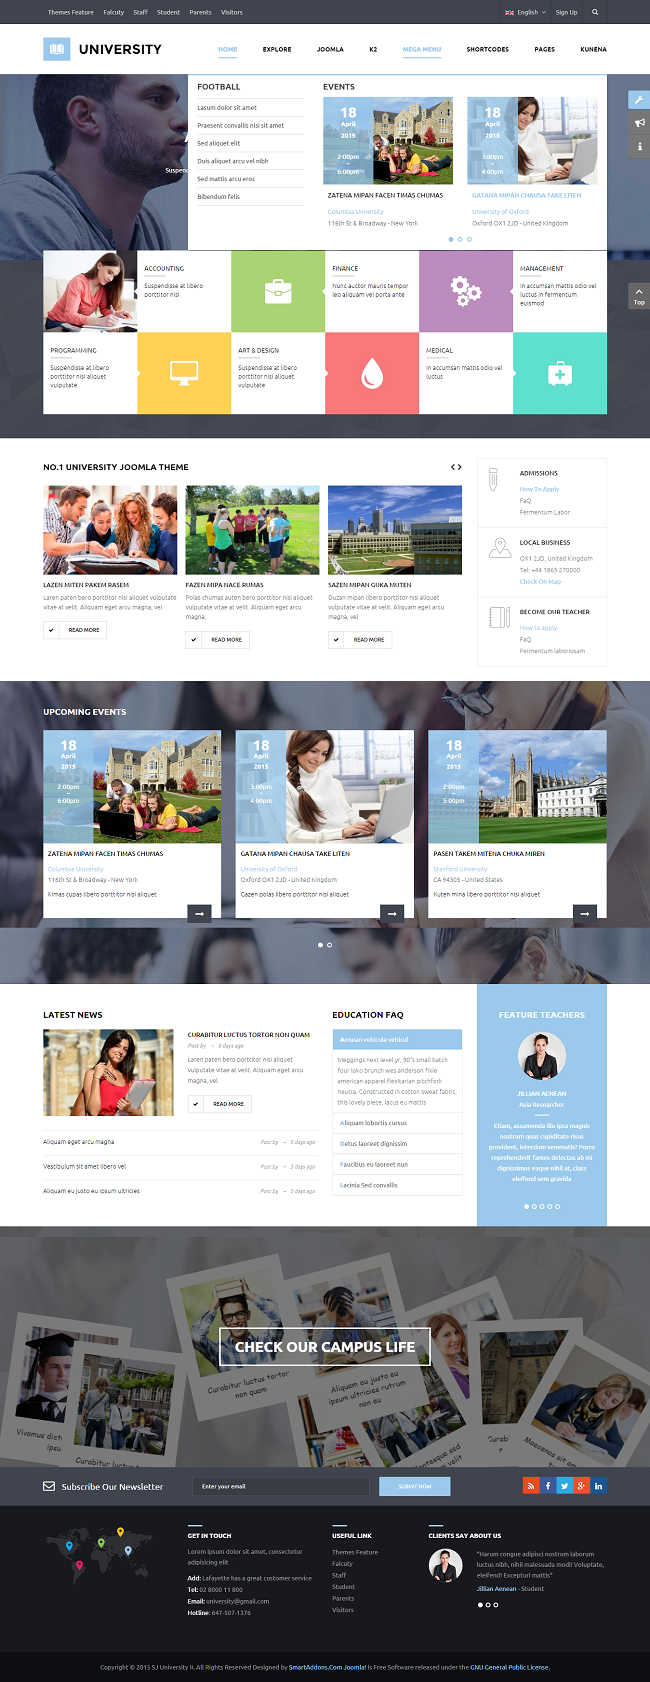 SJ University II - Responsive Joomla Educational Template - 08_mega-menu.png